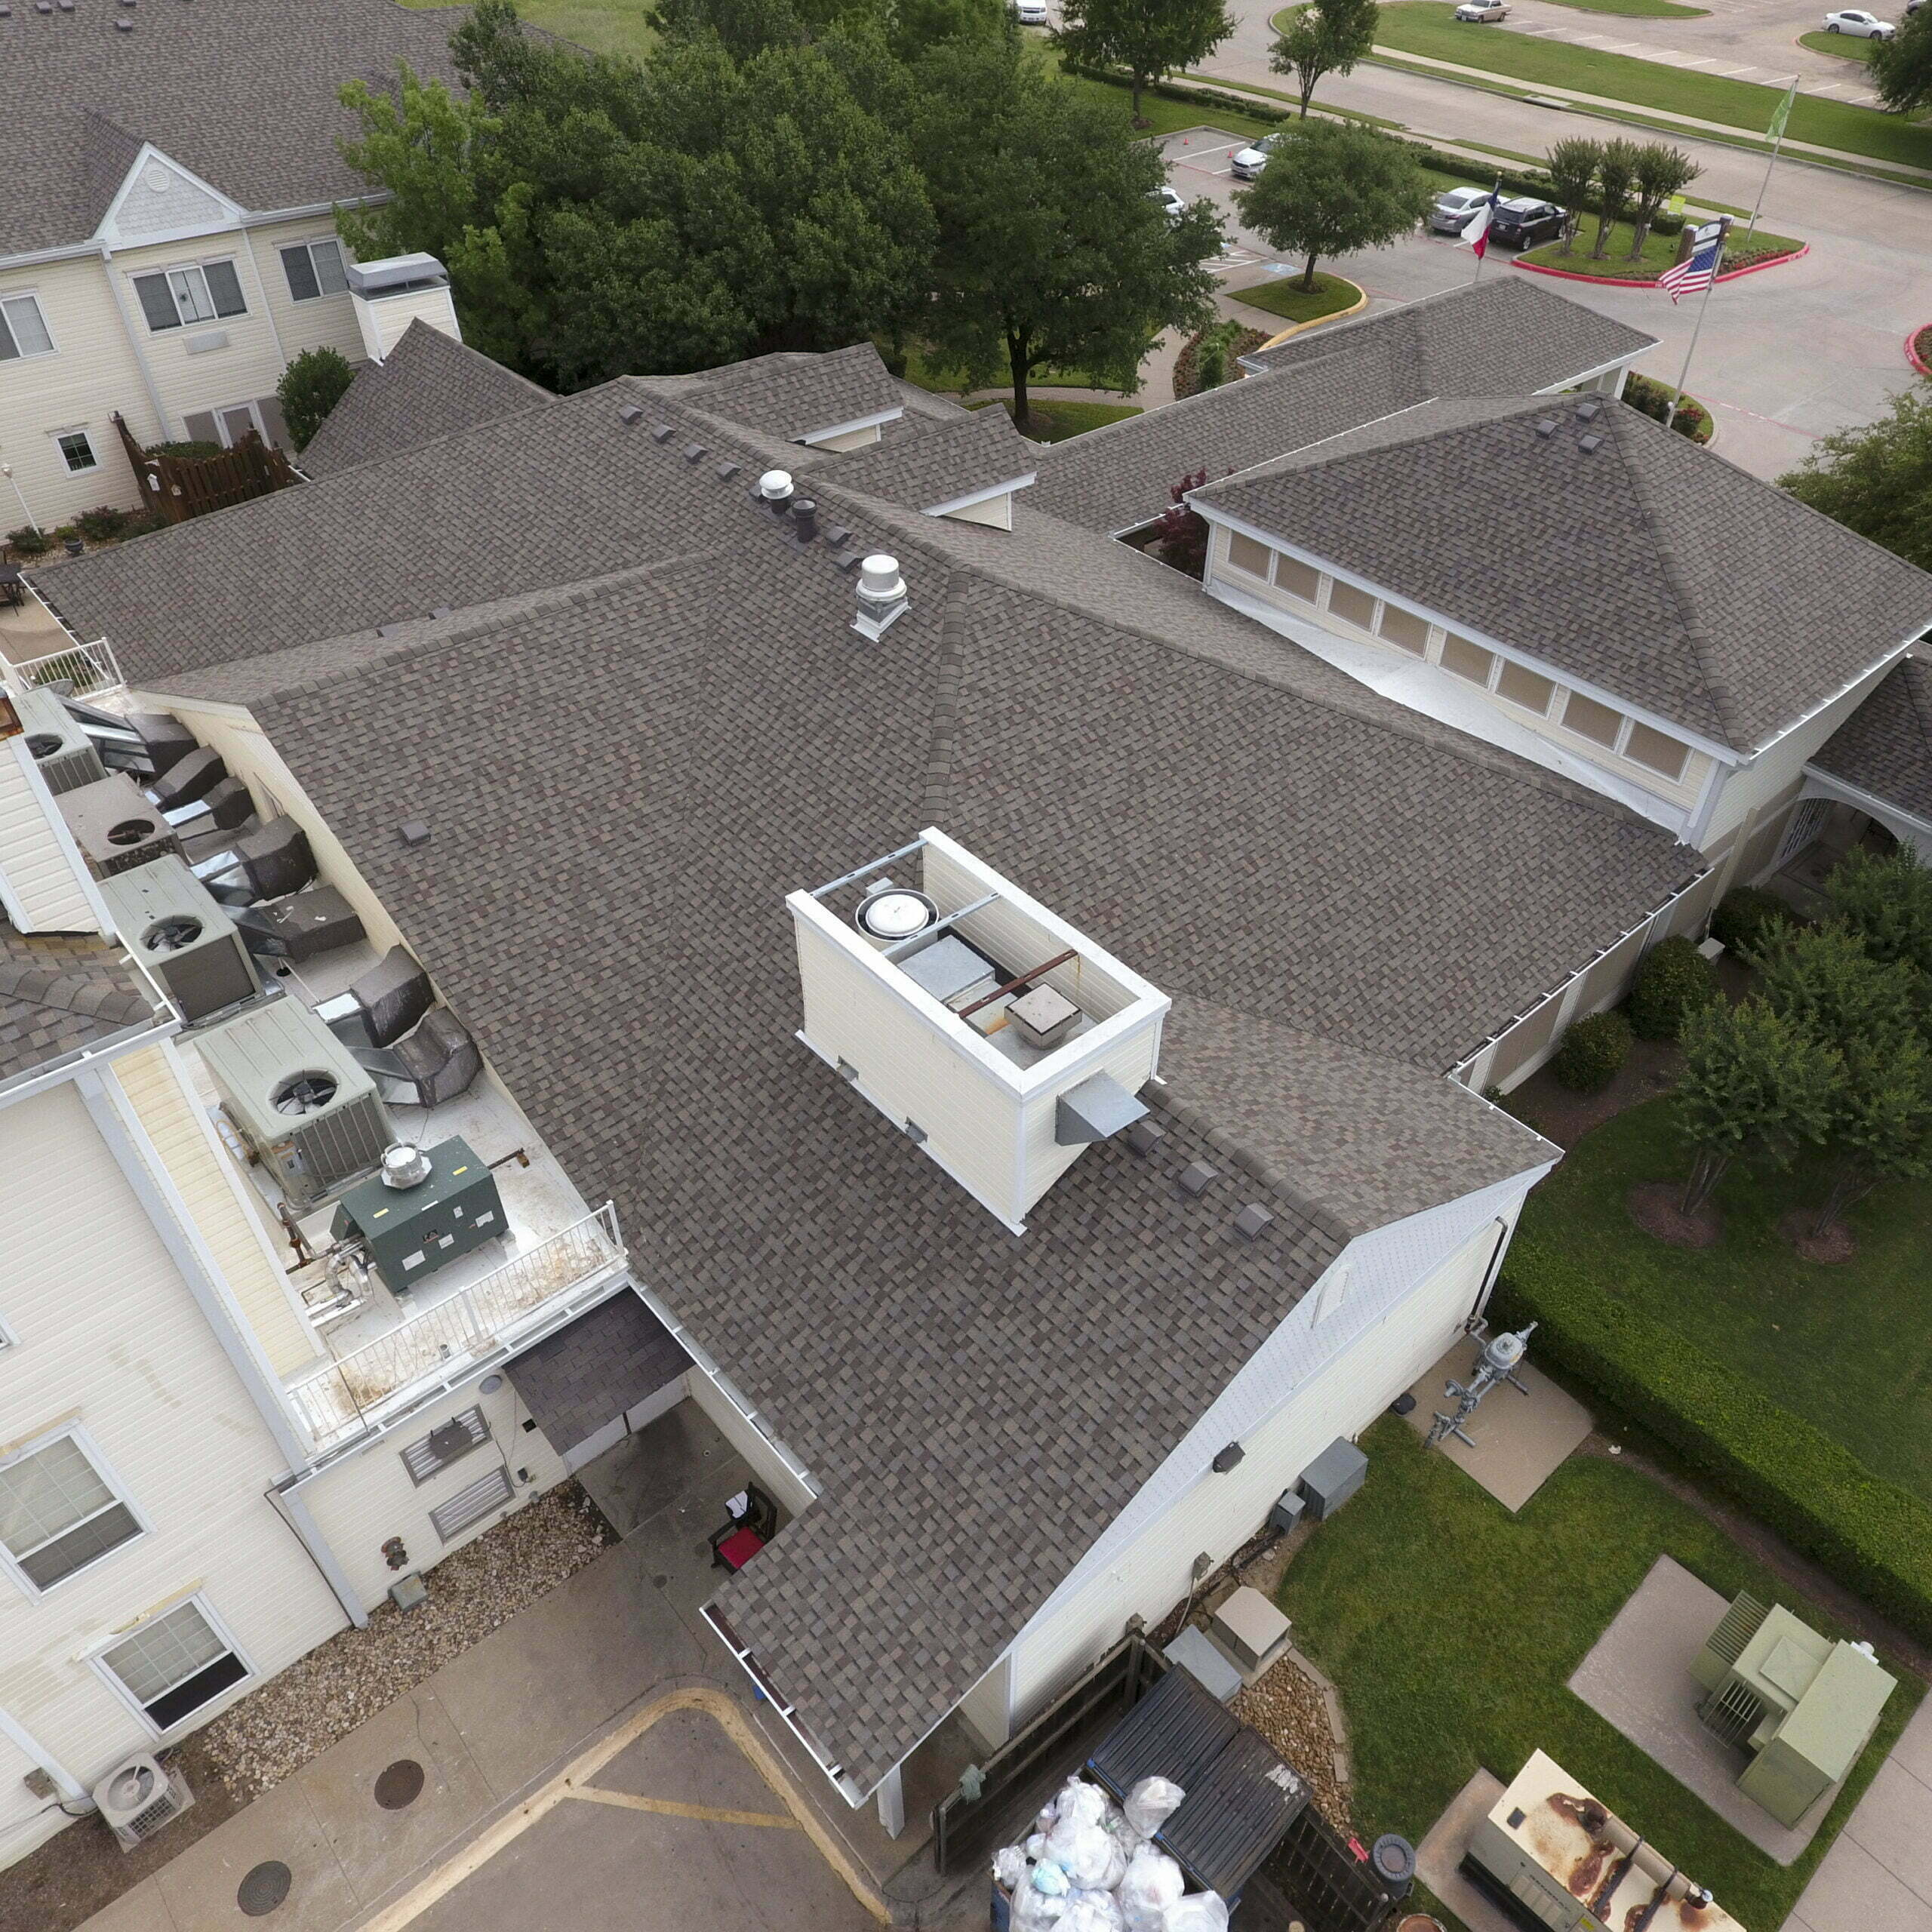 Image shot at Atria, Completed Drone Shots, Carrollton, Texas, June 1, 2020, Jeffrey Parr/Supreme Roofing